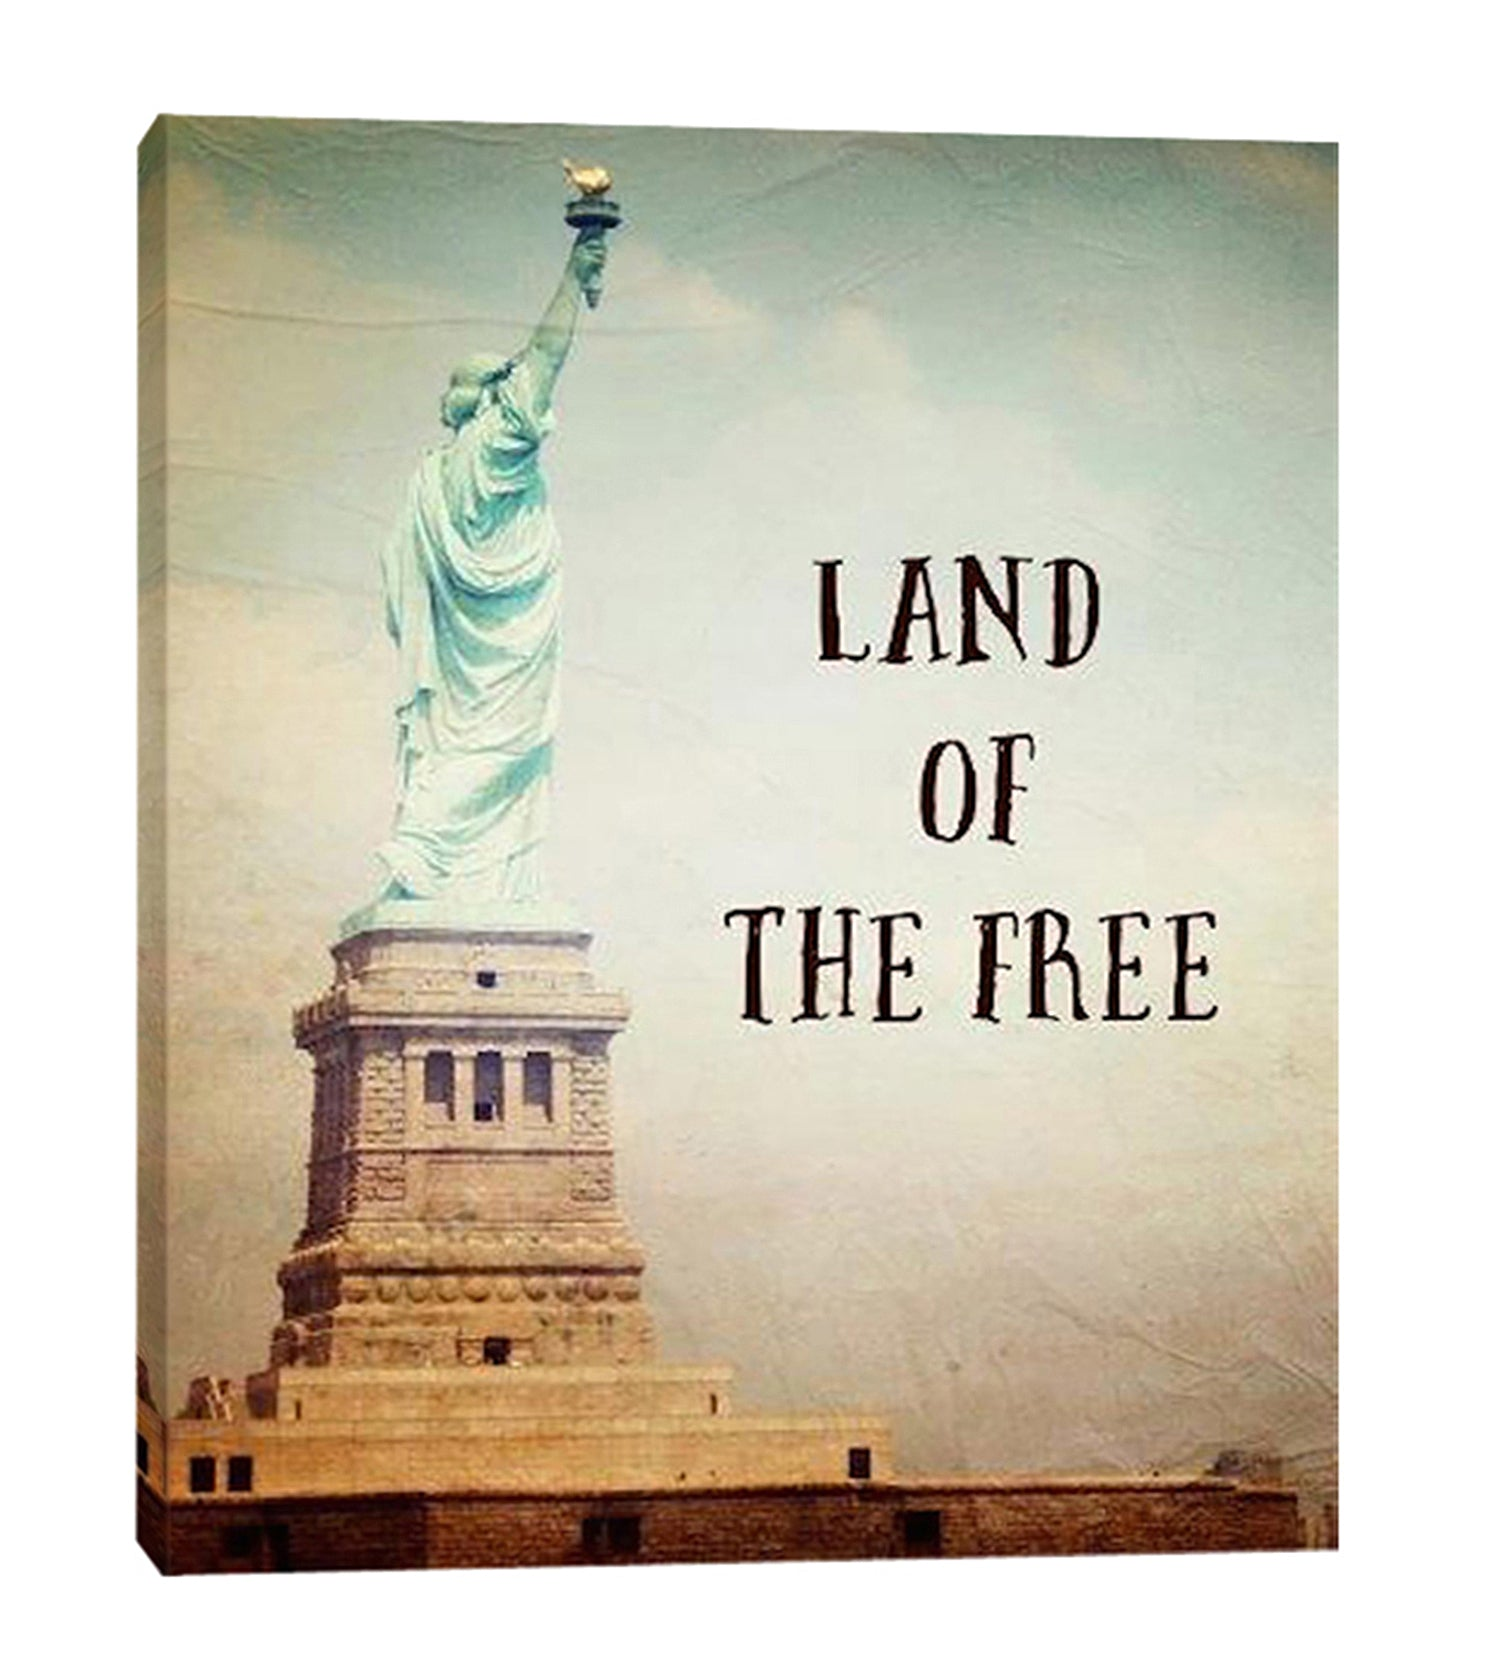 Ashley-Davis,Modern & Contemporary,Buildings & Cityscapes,U.S. States,statue of liberty,usa,statue,liberty,land of the free,words and phrases,Blue,Charcoal Gray,Teal Blue,White,Gray